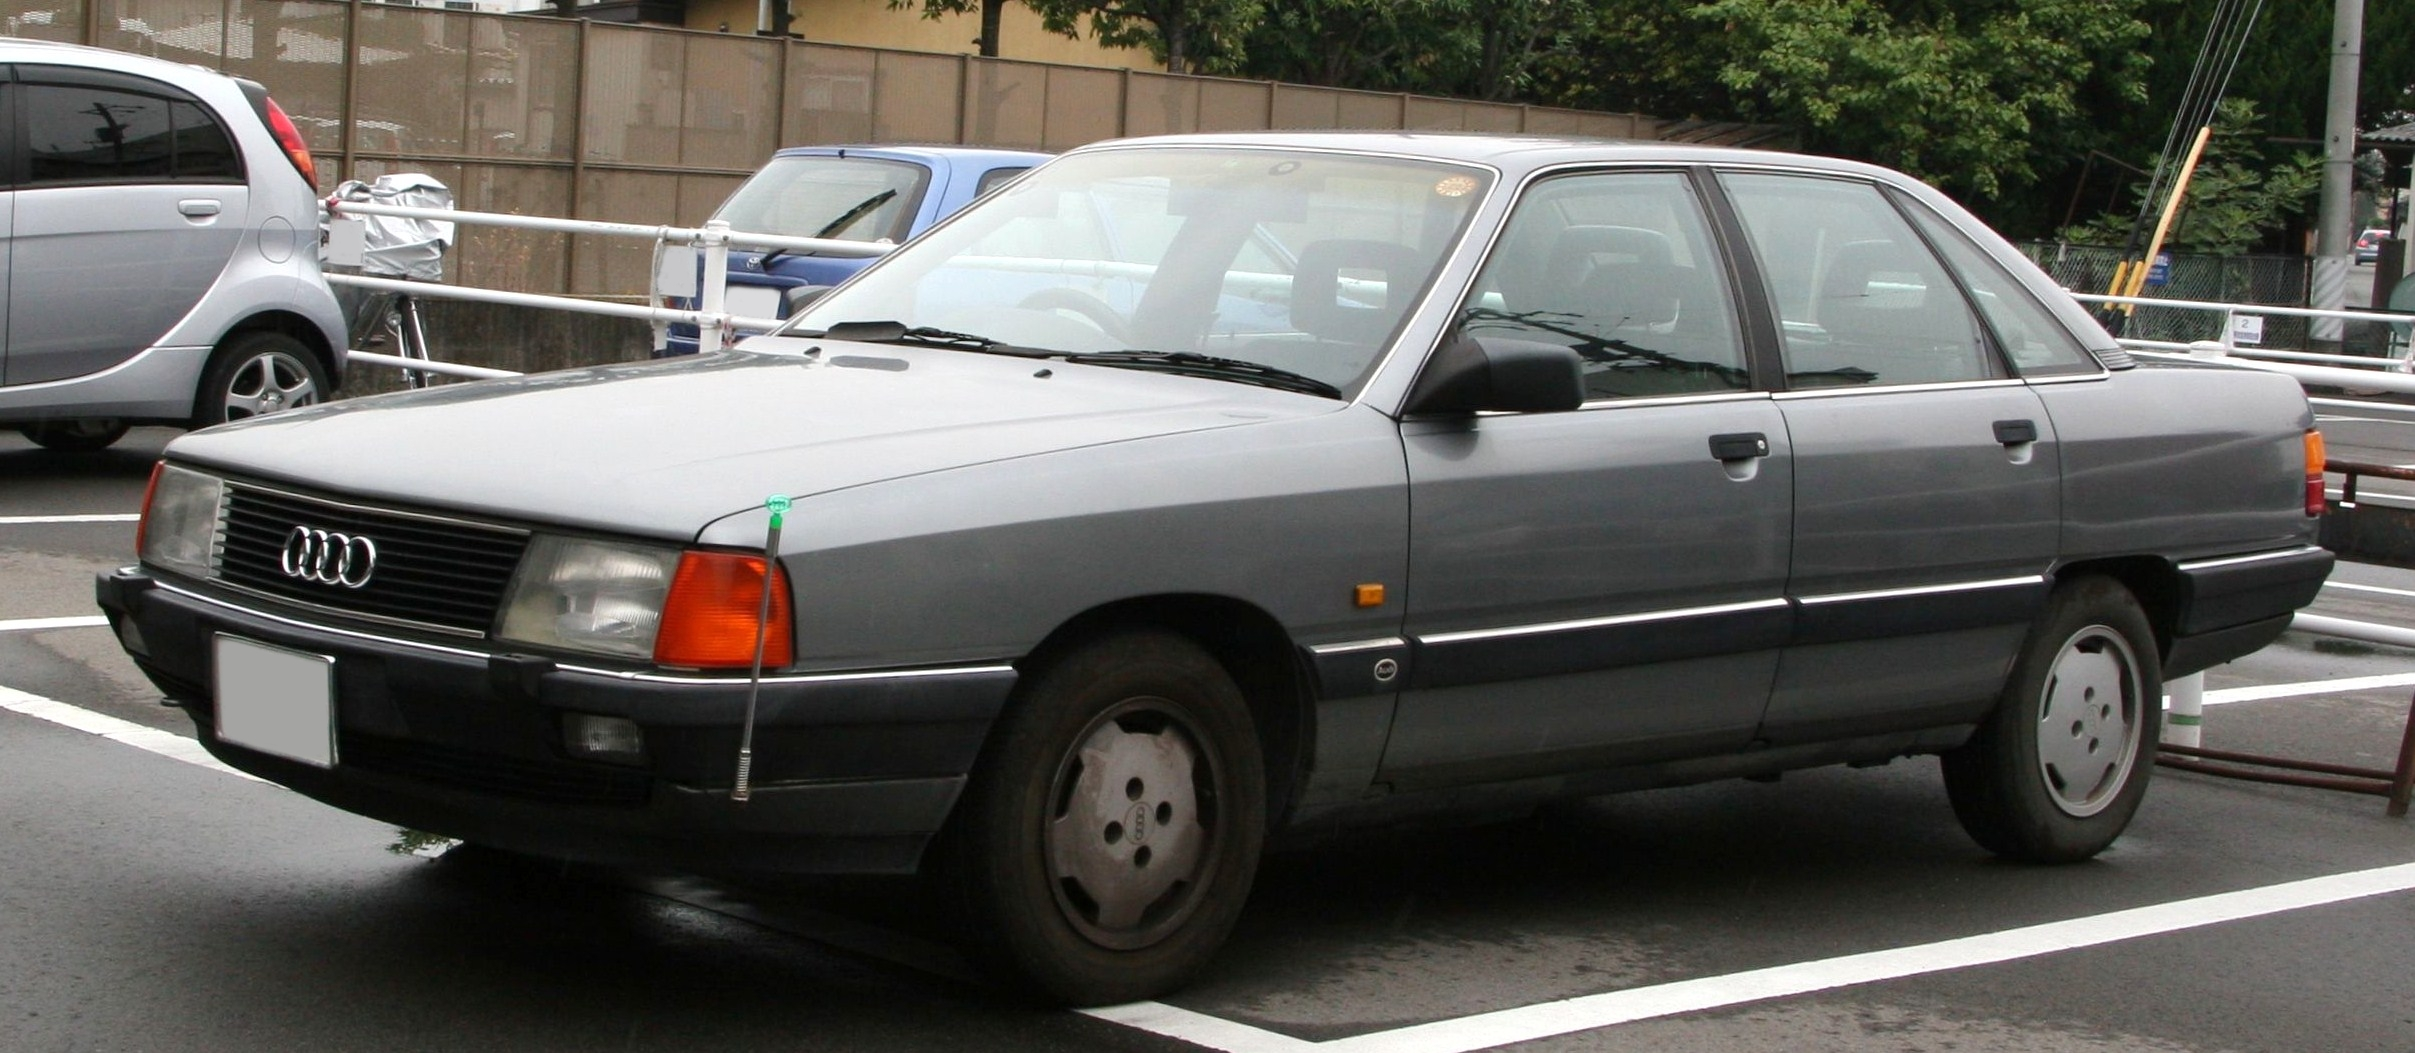 Audi 100   pictures, information and specs - Auto-Database.com